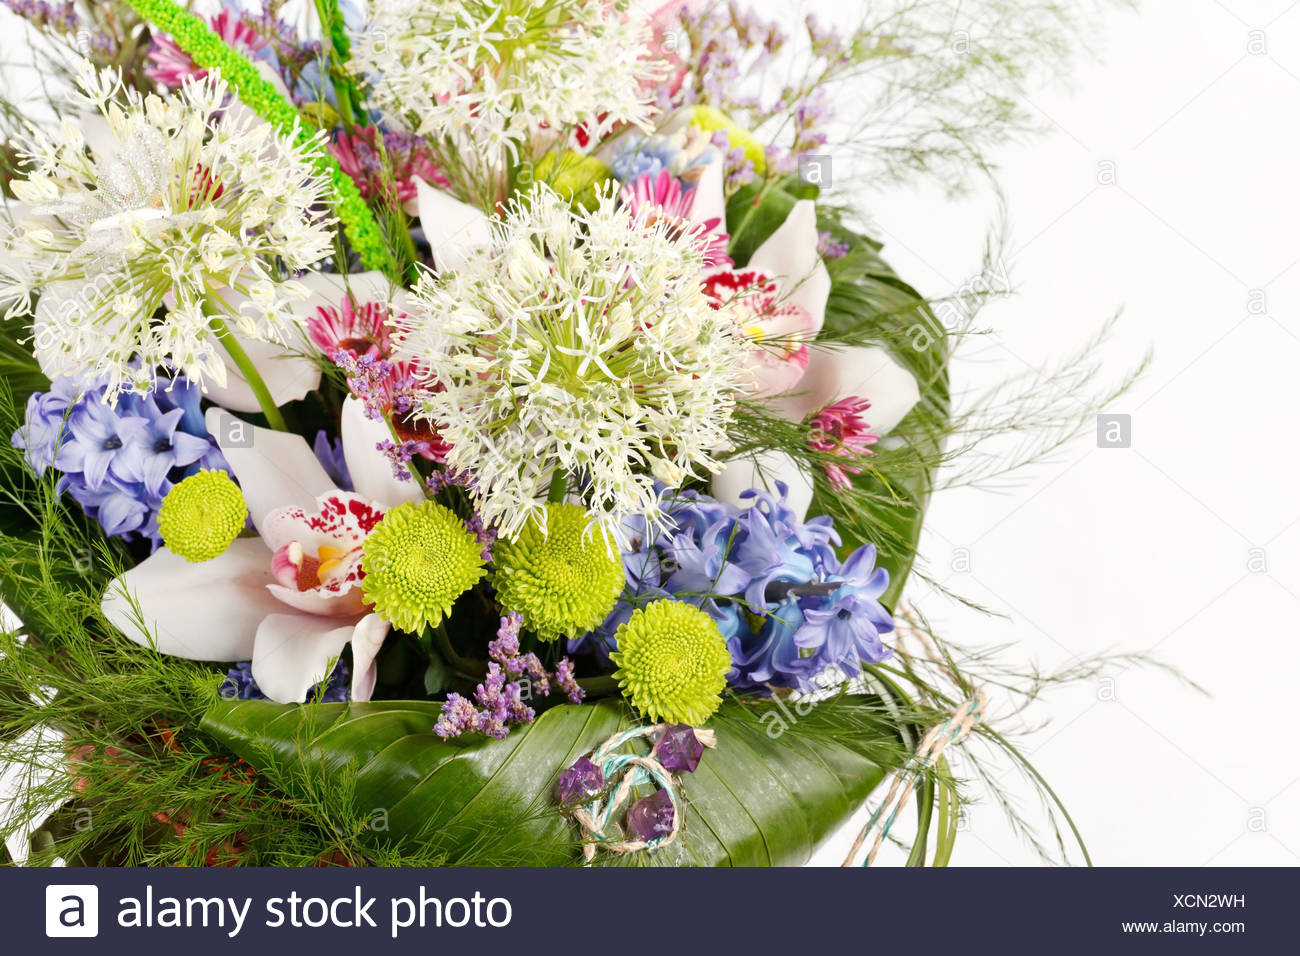 Beautiful flowers in the basket stock photo 283205037 alamy beautiful flowers in the basket izmirmasajfo